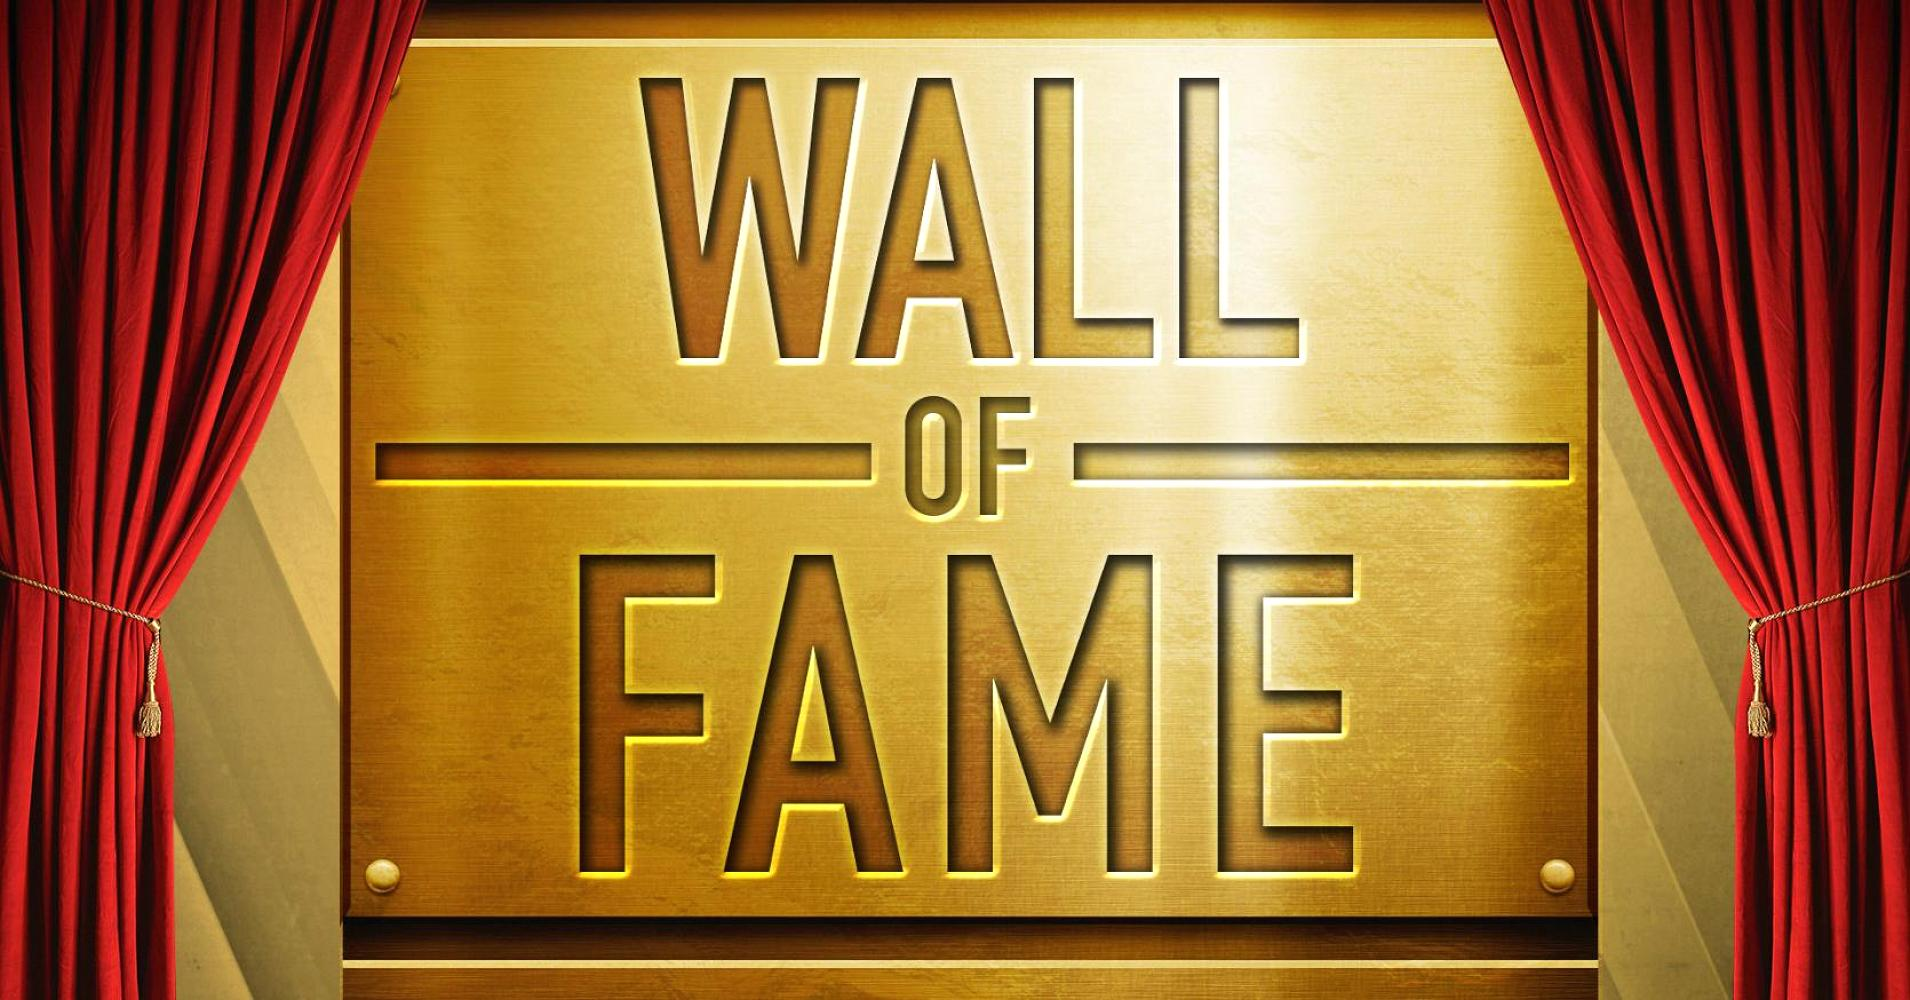 Jim Cramer Inducts A New CEO Into His wall Of Fame